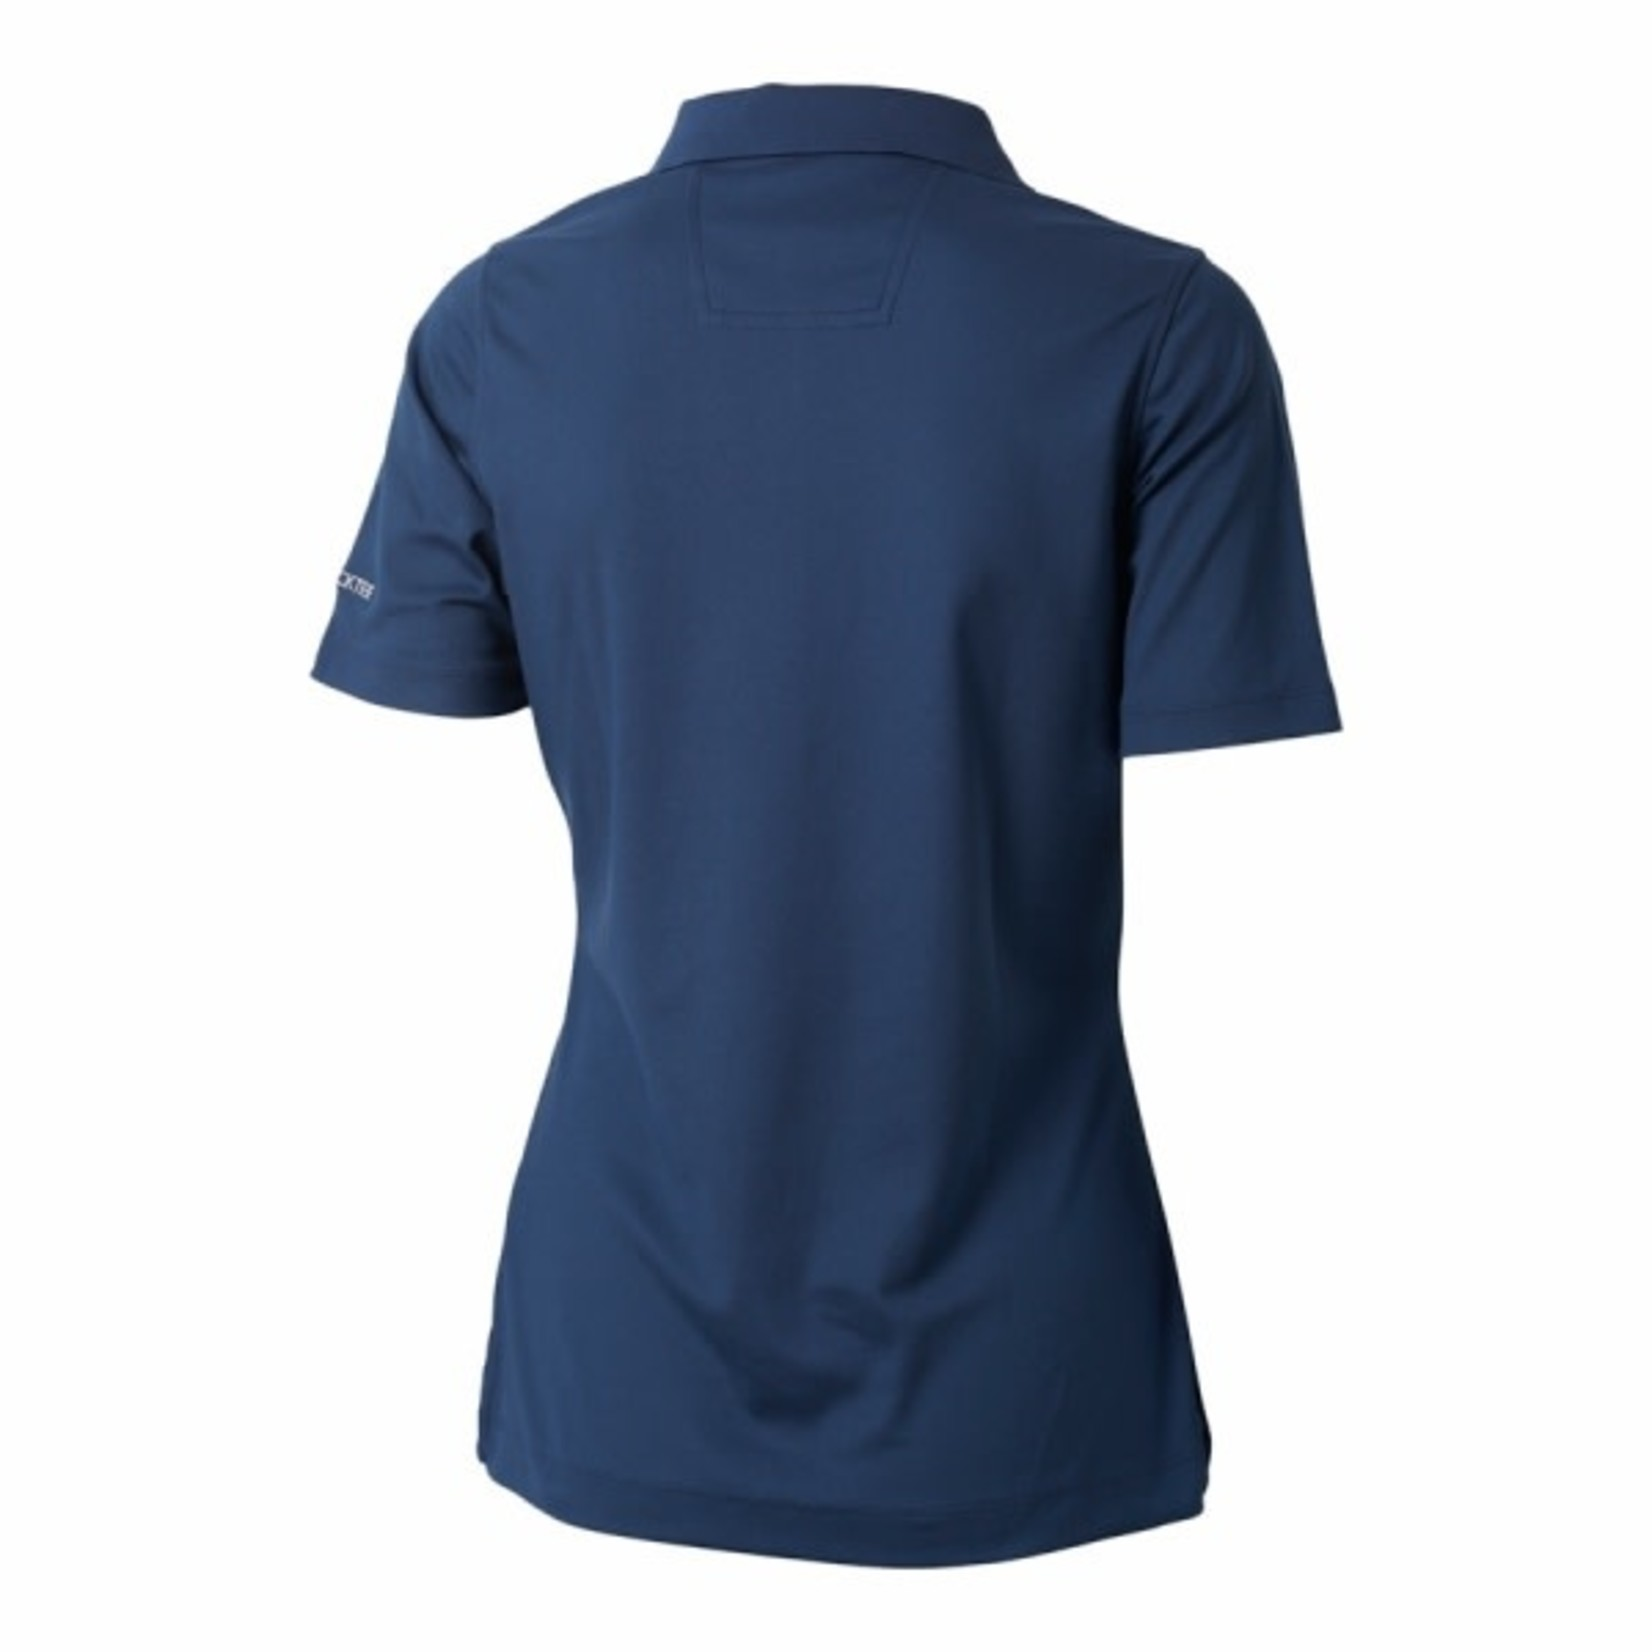 Backtee Backtee Ladies Quick Dry Perf Polo NAVY